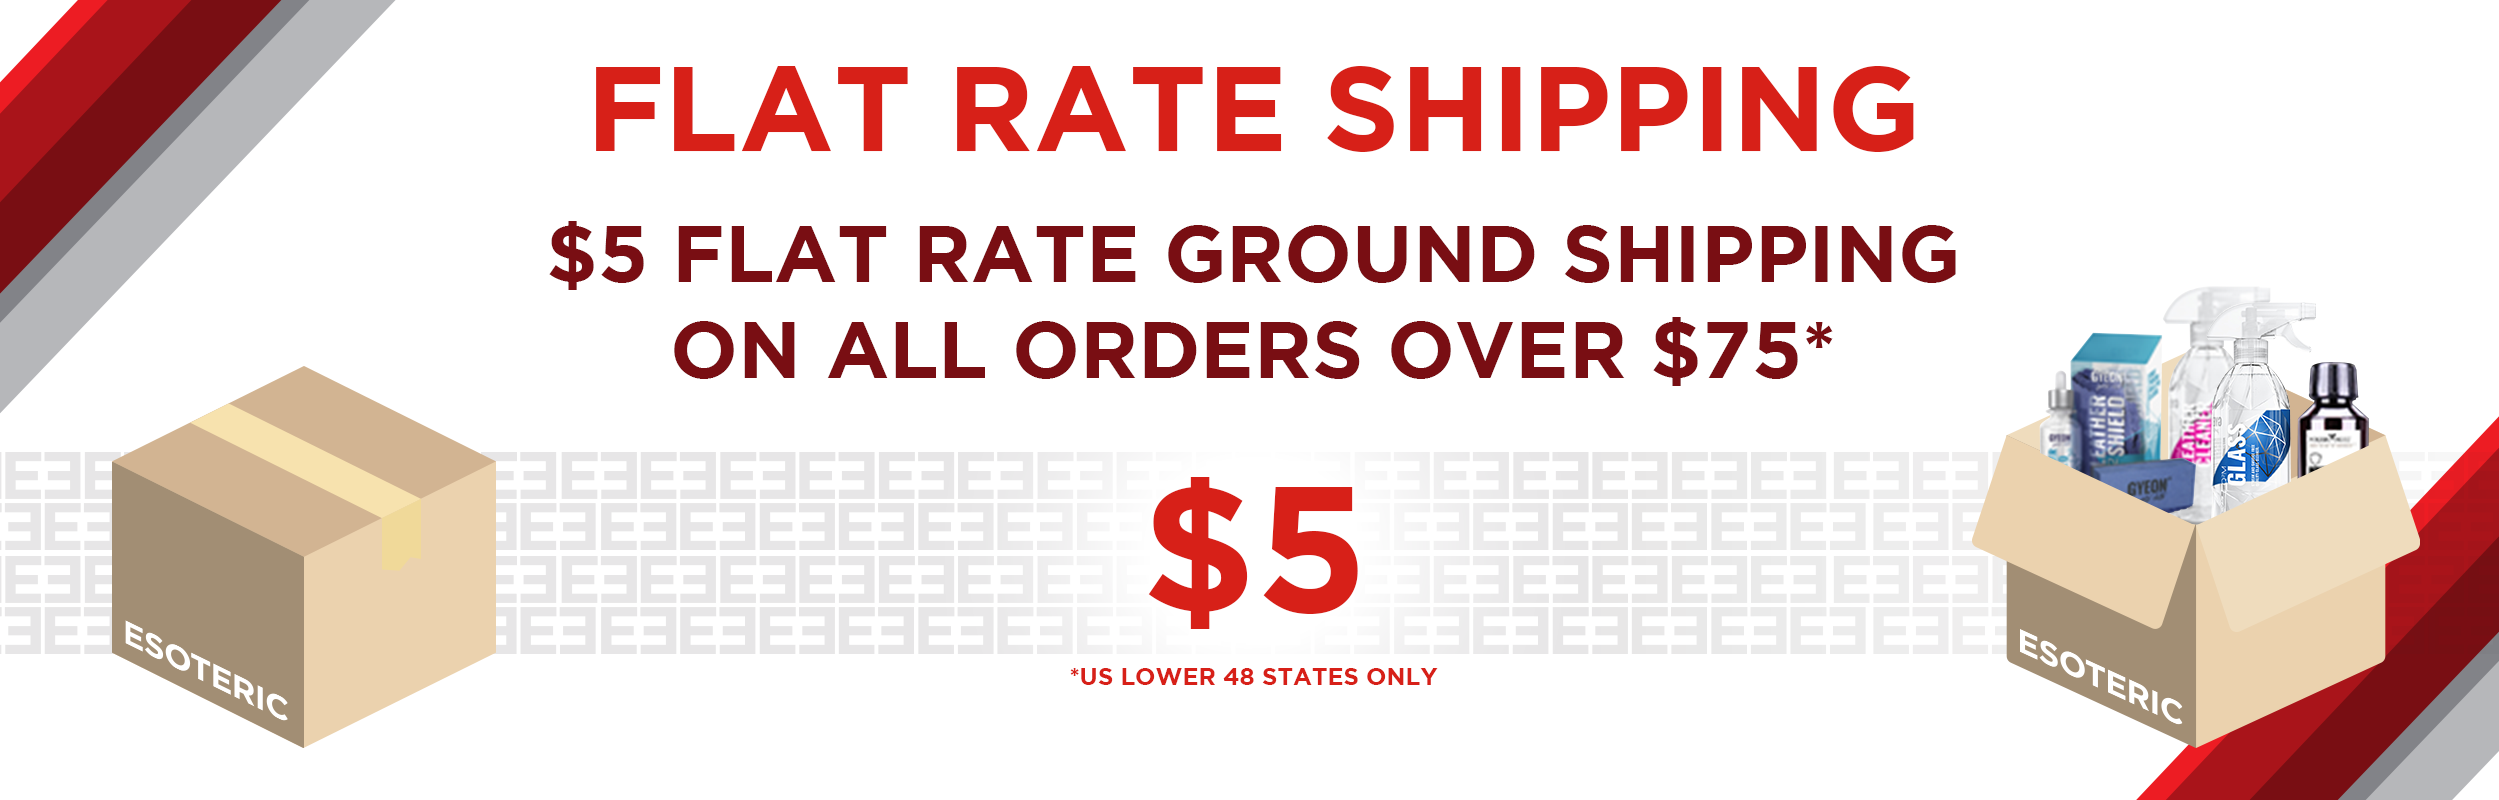 Esoteric Flat Rate Shipping